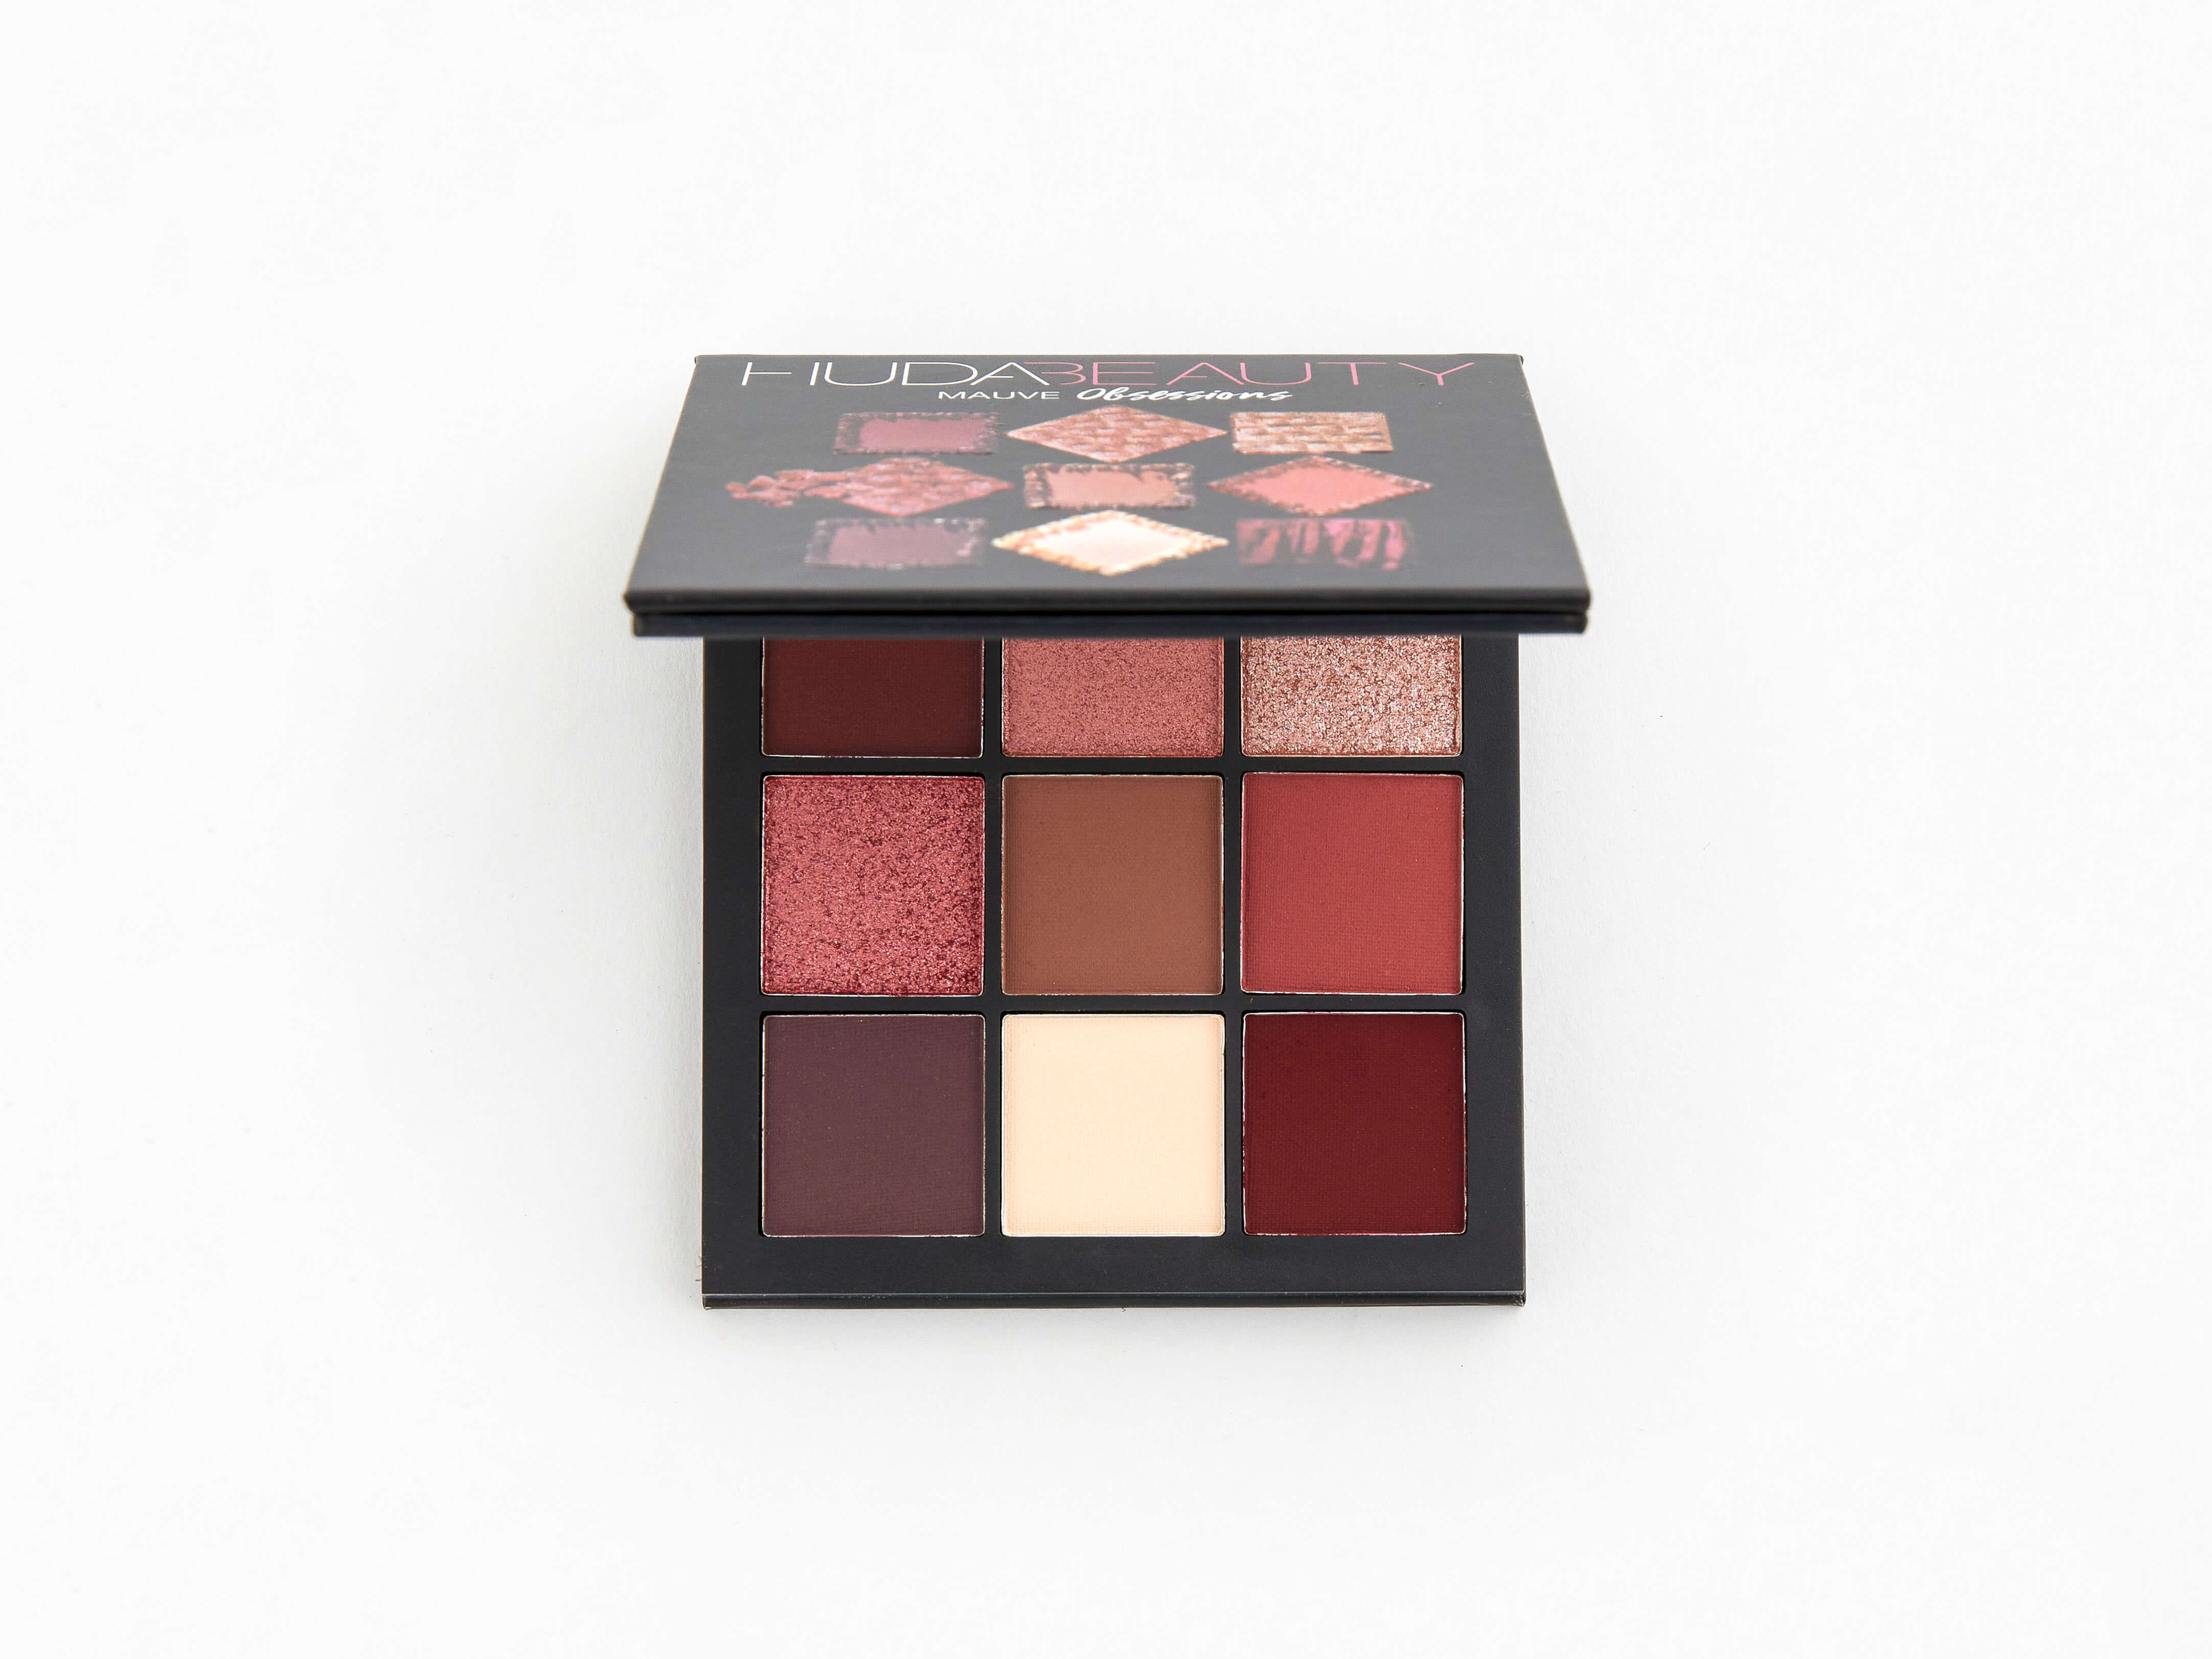 Huda Obsessions Eyeshadow Palette in Mauve